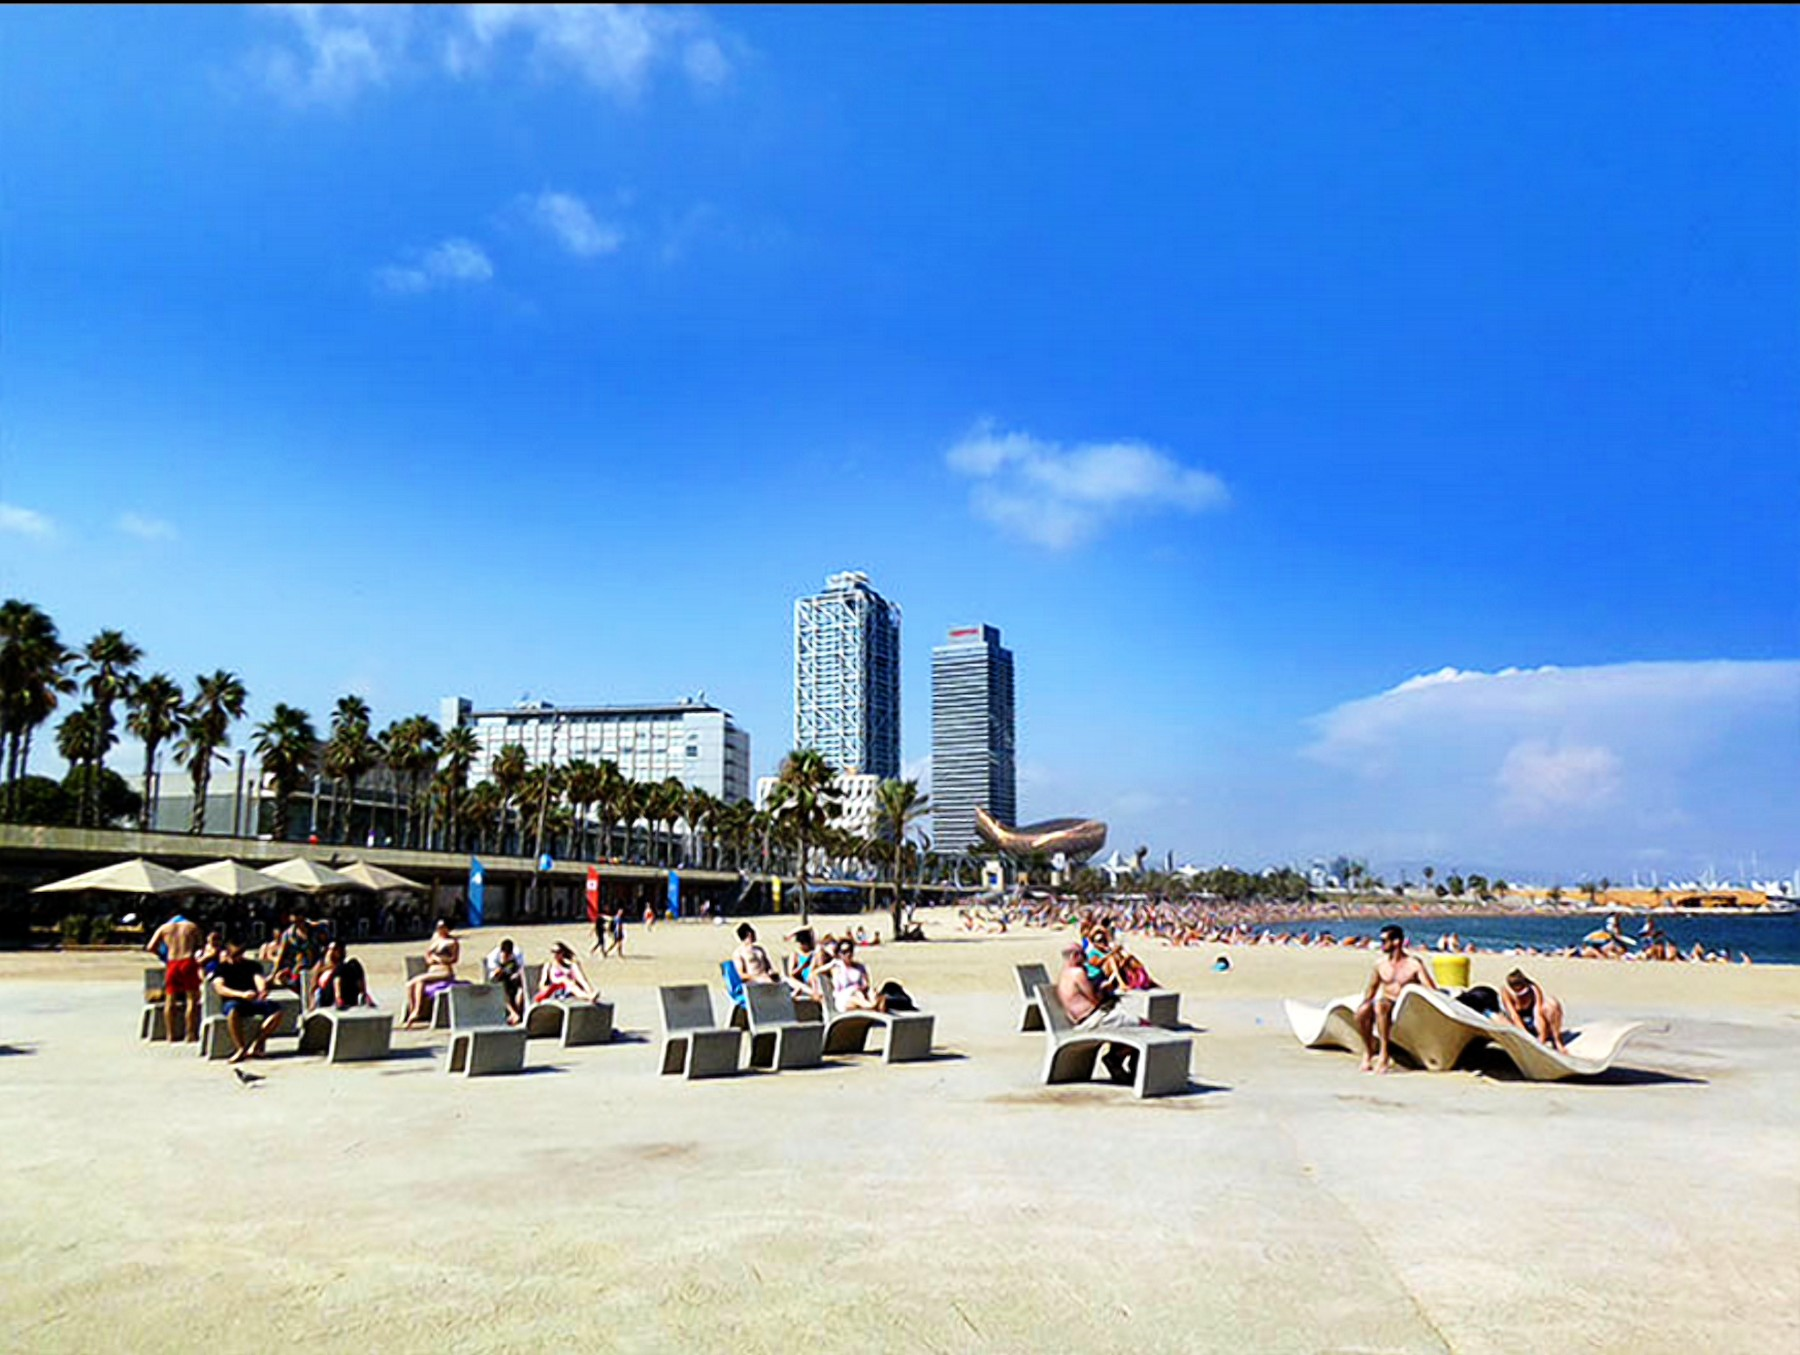 10 Best Barcelona Apartments, Vacation Rentals (with) Barcelona spain beaches photos